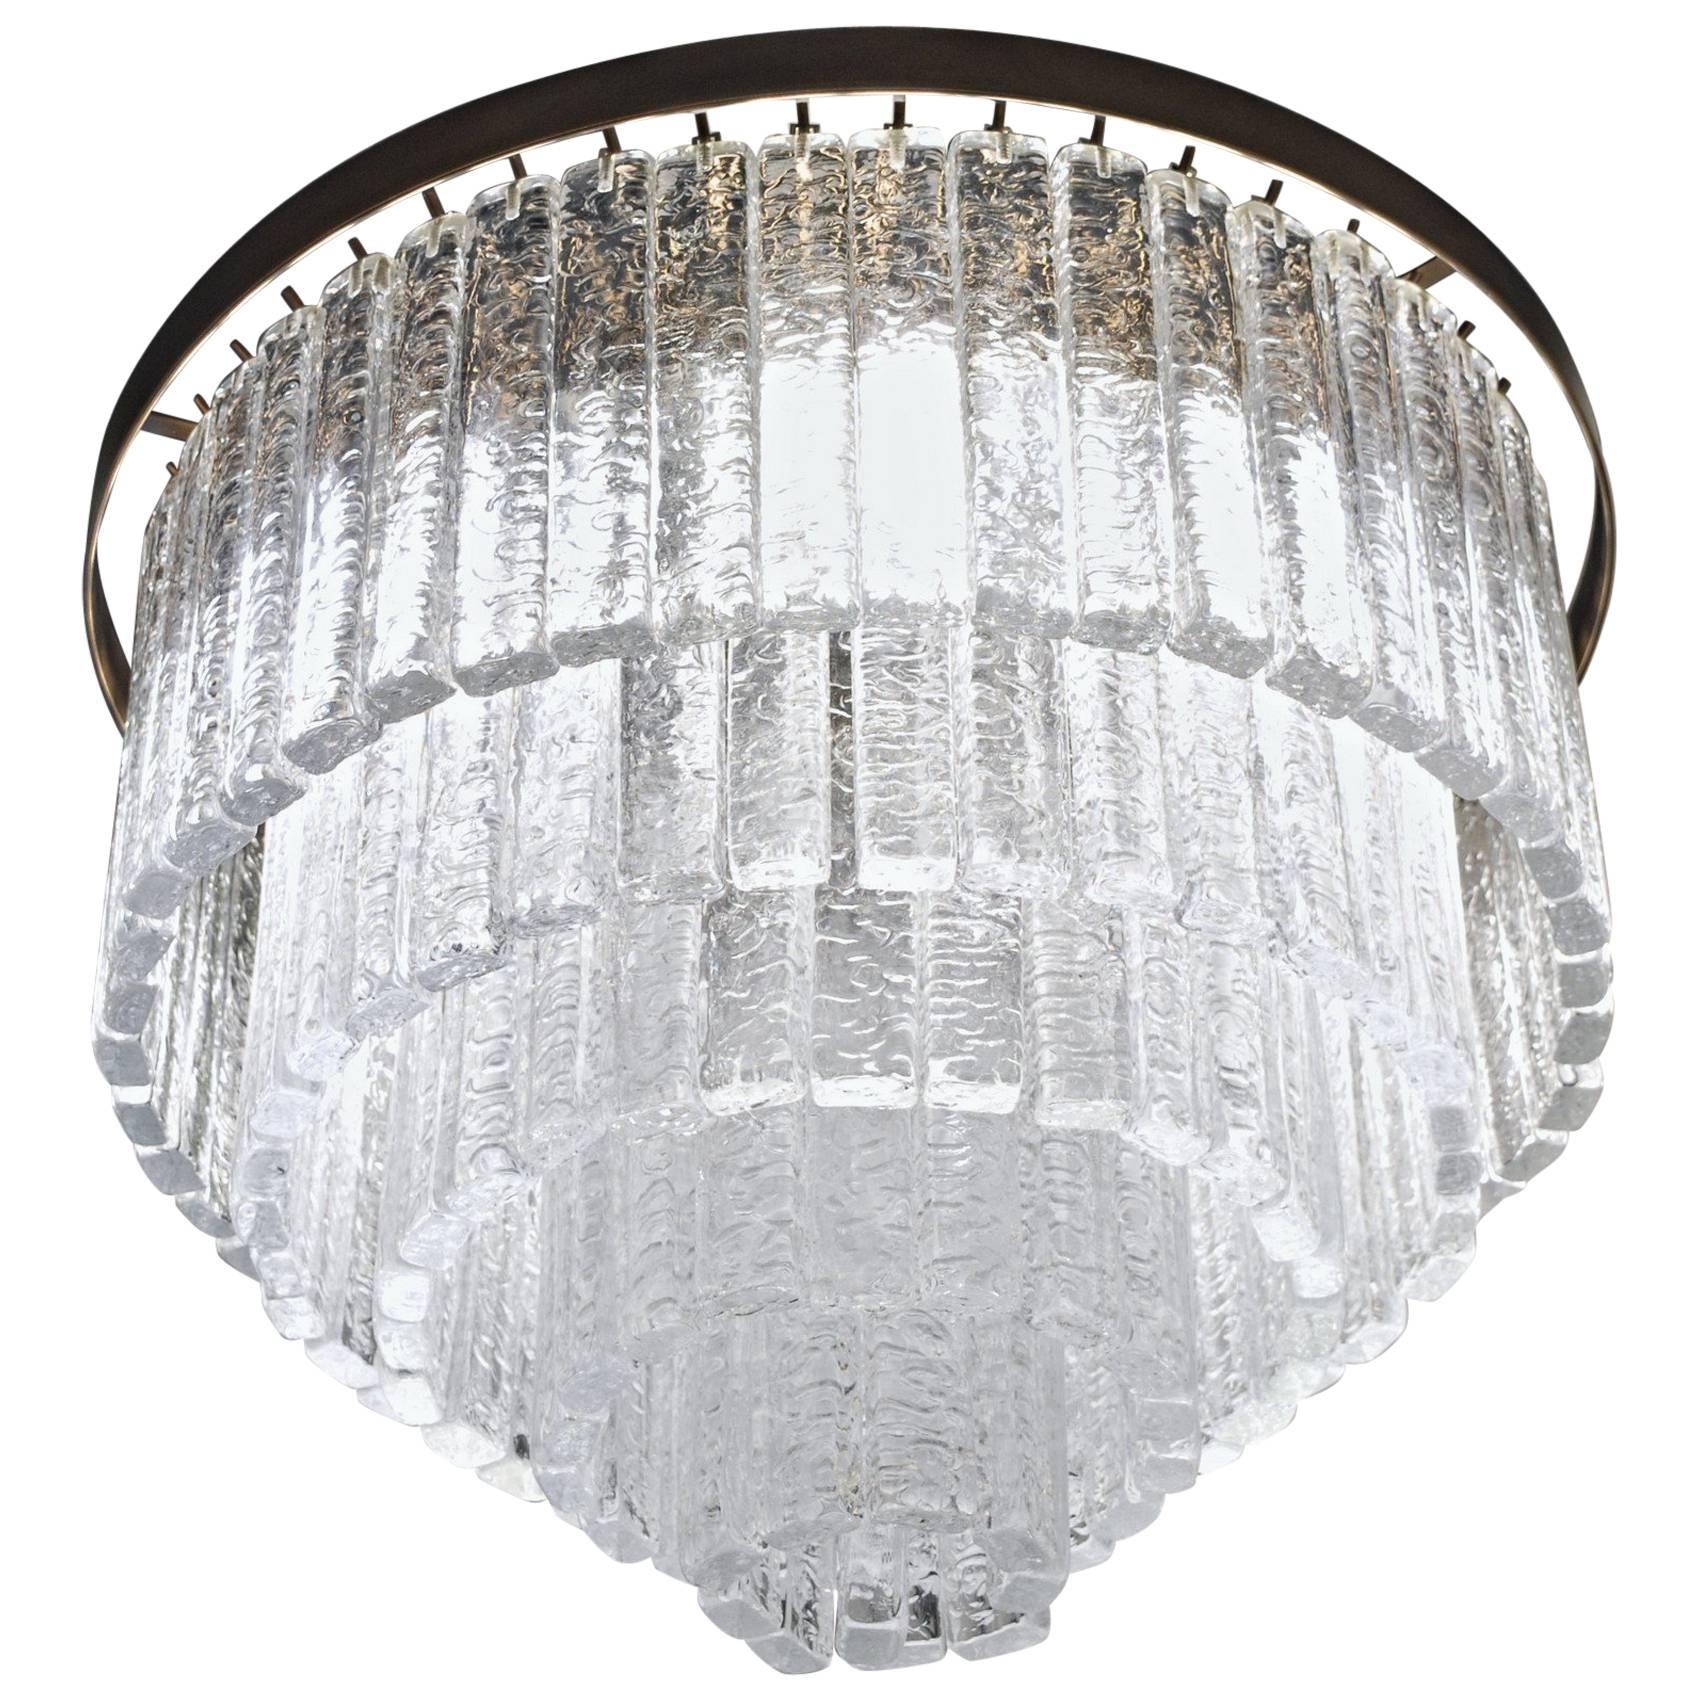 Round 5+1 Tiers Chandelier, Murano, Clear Glass 1990s, Bronze Finish Metal Ring